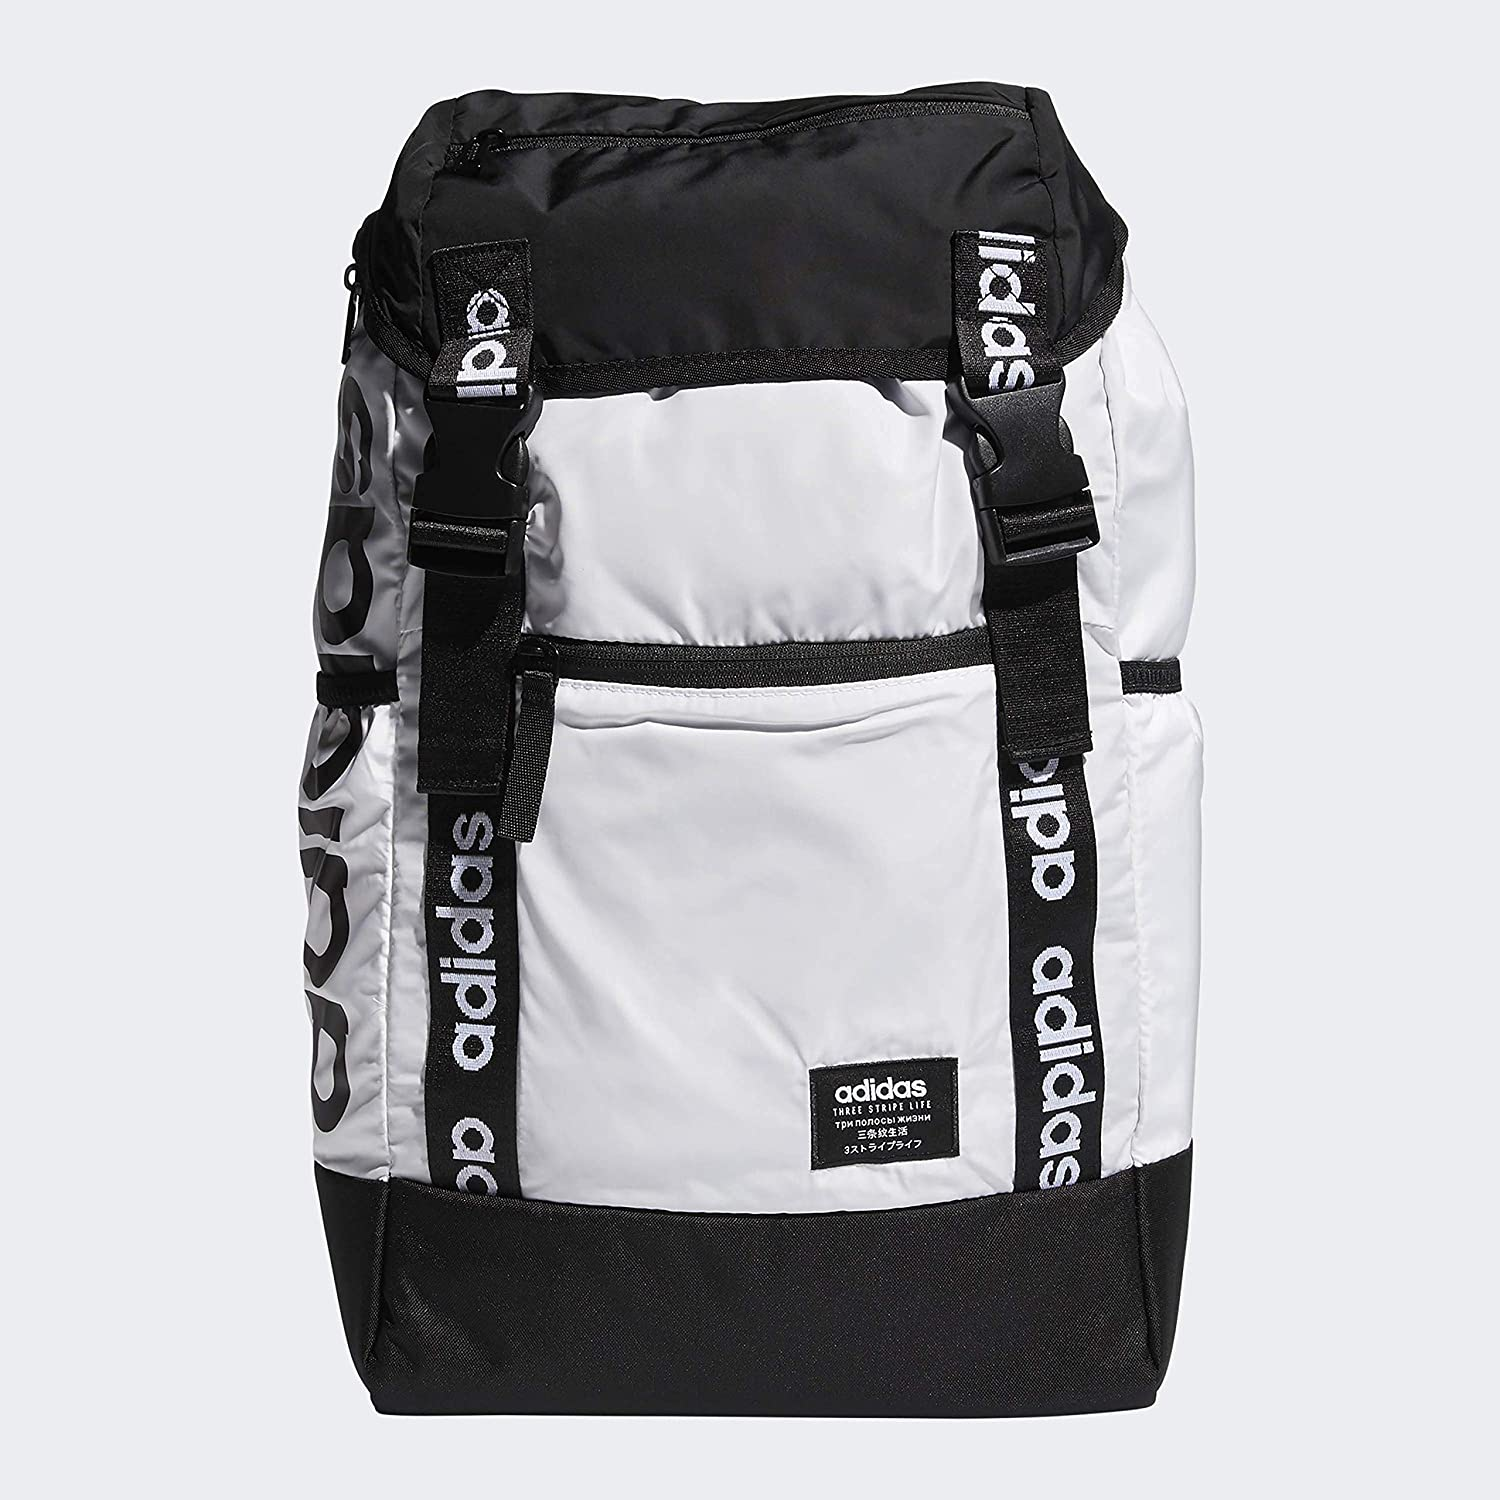 adidas unisex-adult Midvale Backpack